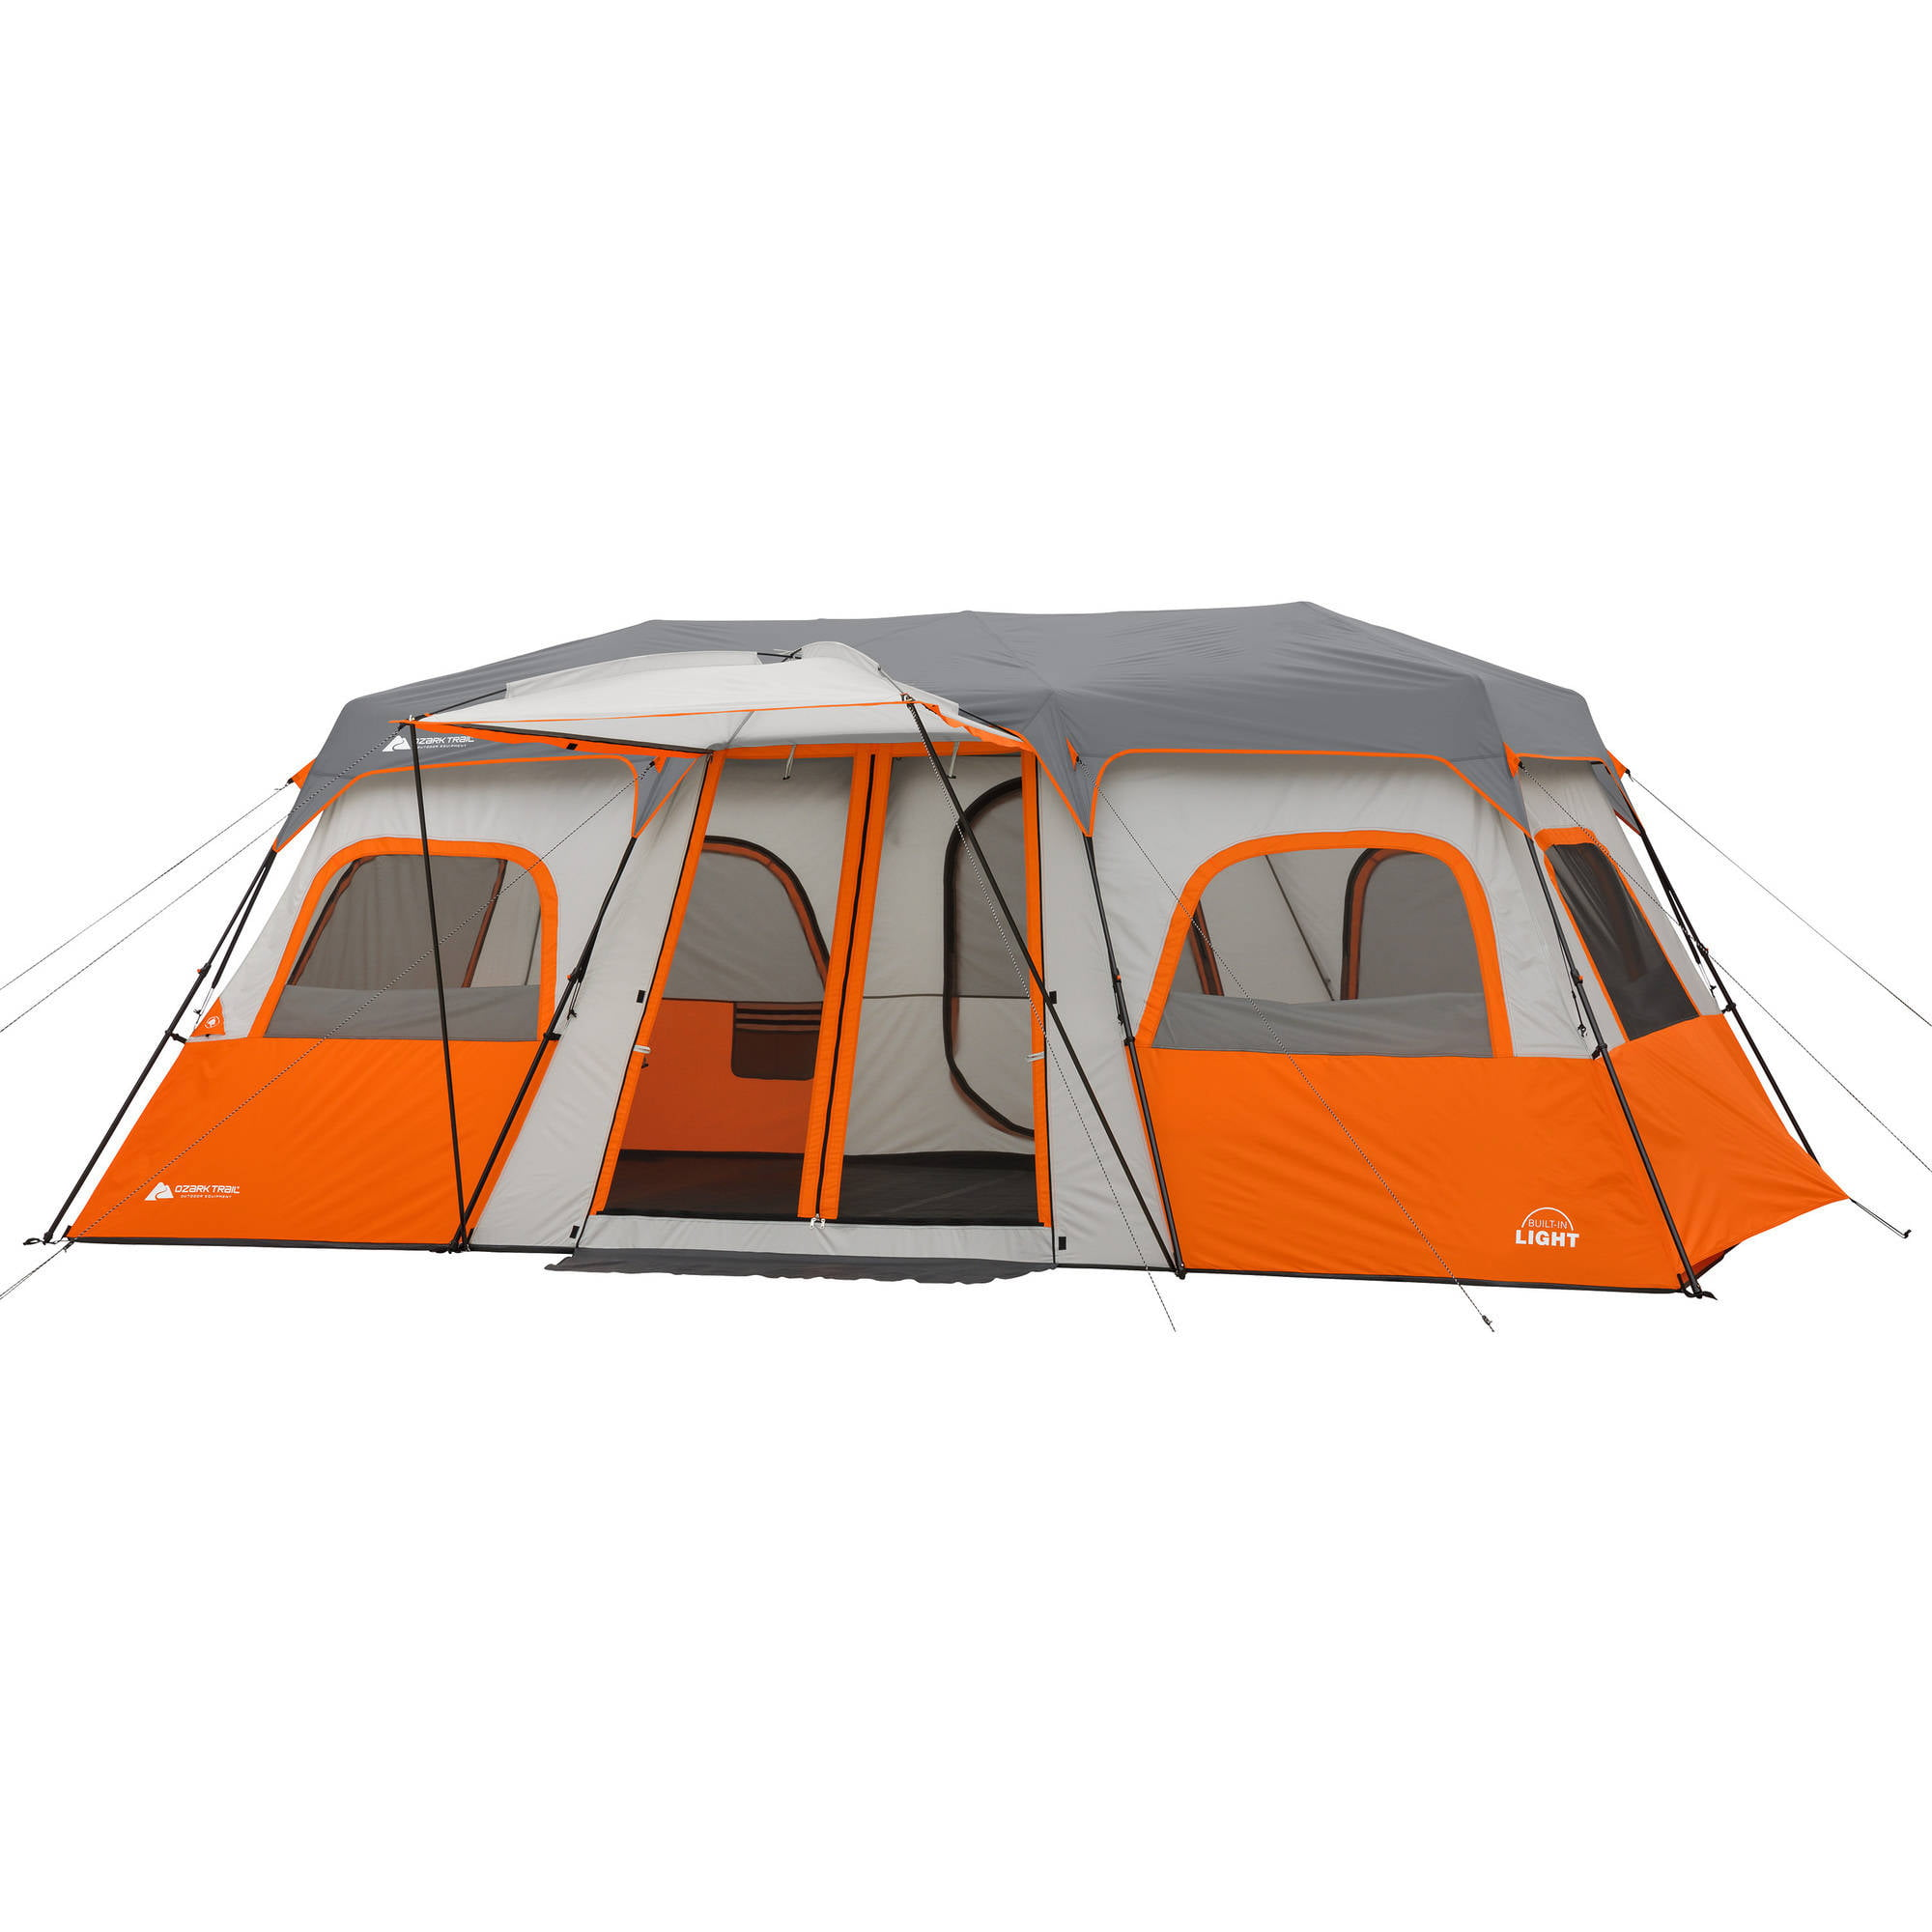 "Ozark Trail 18"" x 10' Instant Cabin Tent with Integrated Led Light, Sleeps 12 by Bohemian Travel Gear Limited"